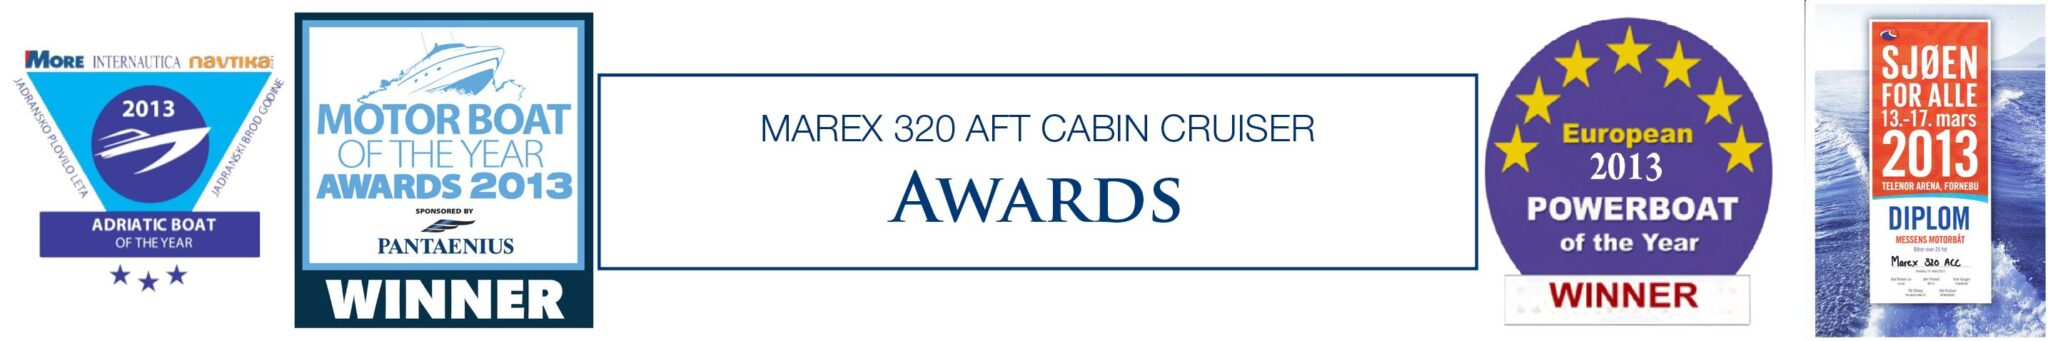 marex-320-aft-cabin-cruiser-awards